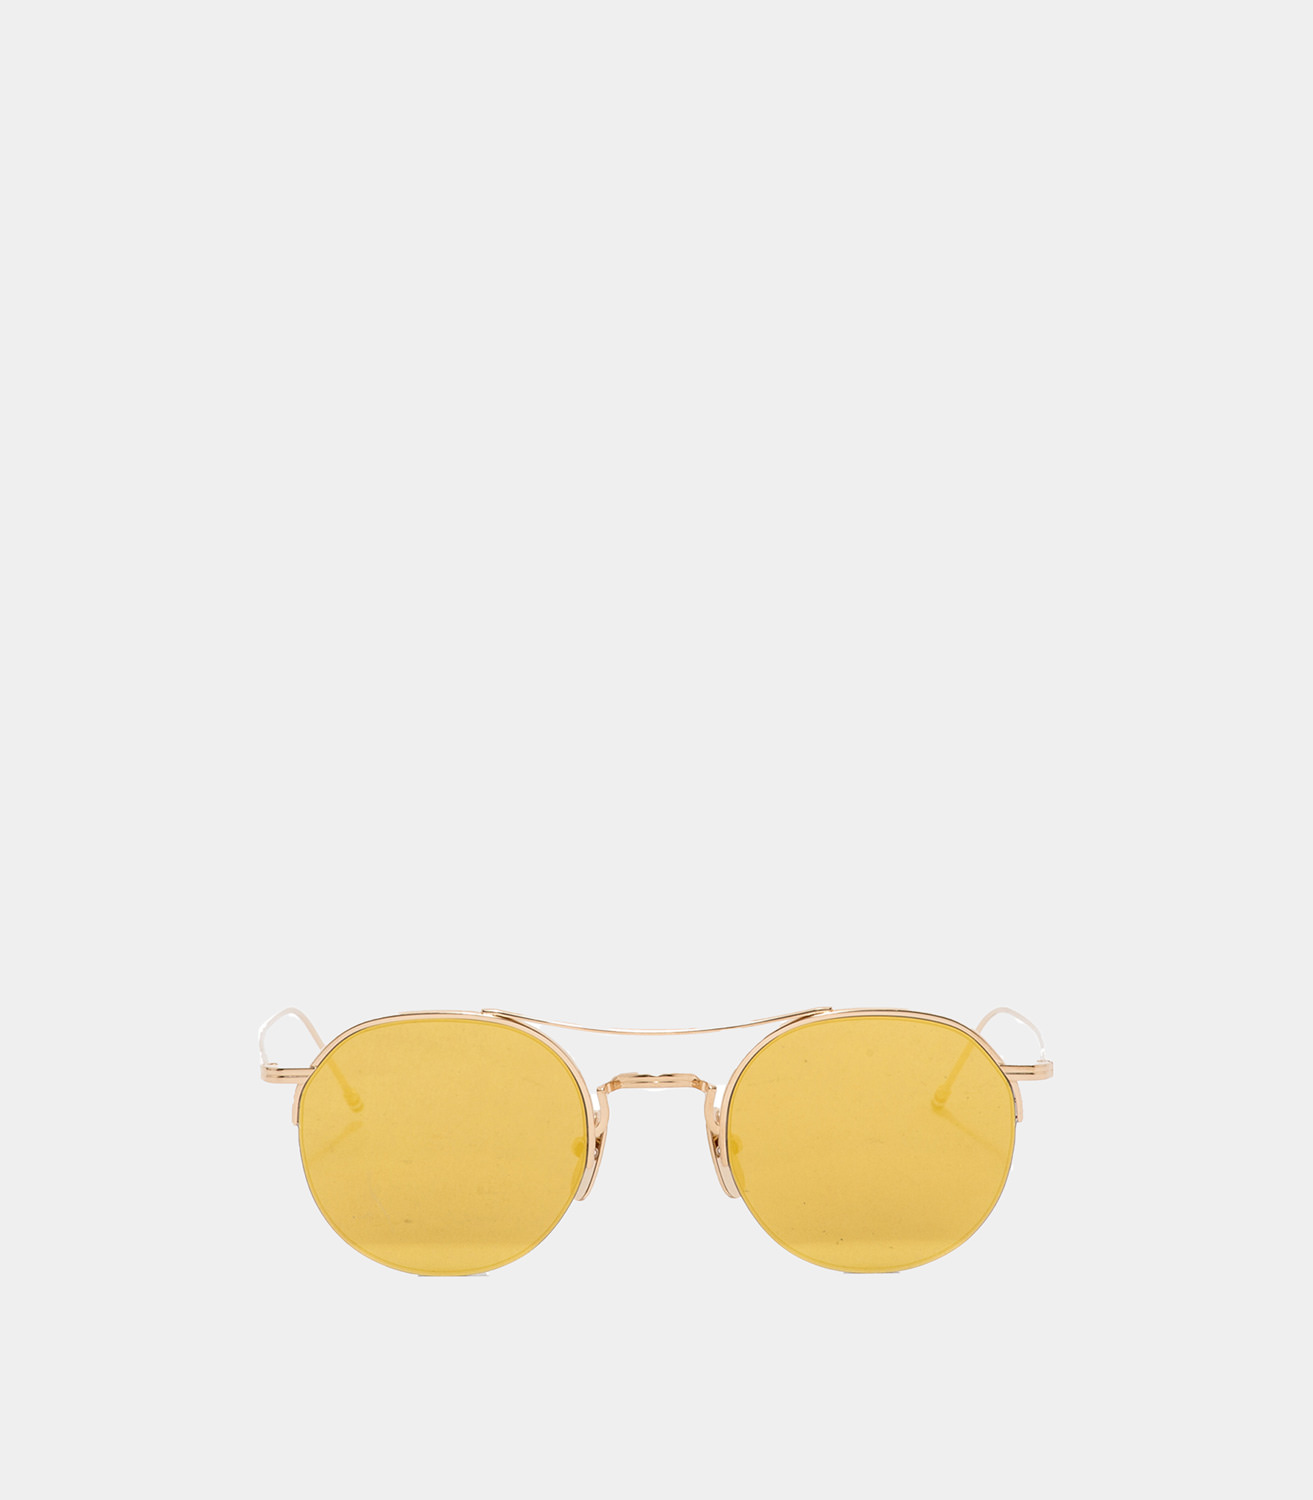 8405b8a93ce THOM BROWNE GOLD AND BROWN SUNGLASSES